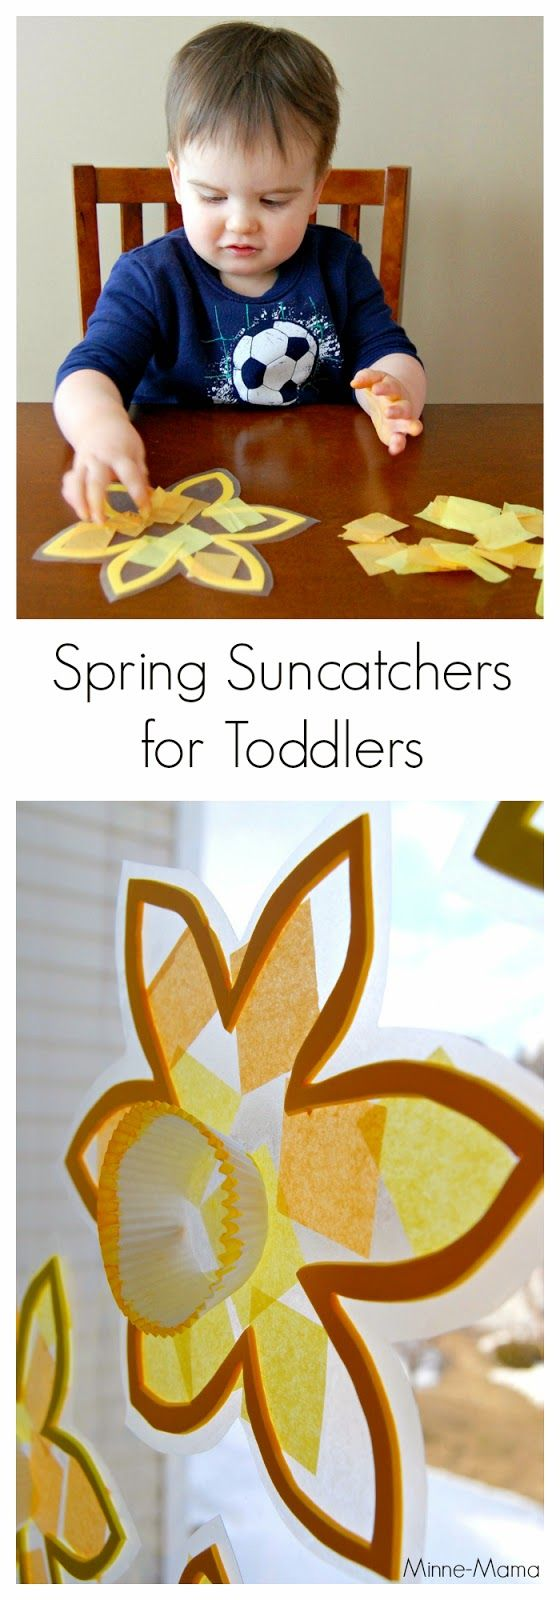 {Guest Post}  Toddler-Made Spring Suncatchers from Minne-Mama for Fun at Home with Kids